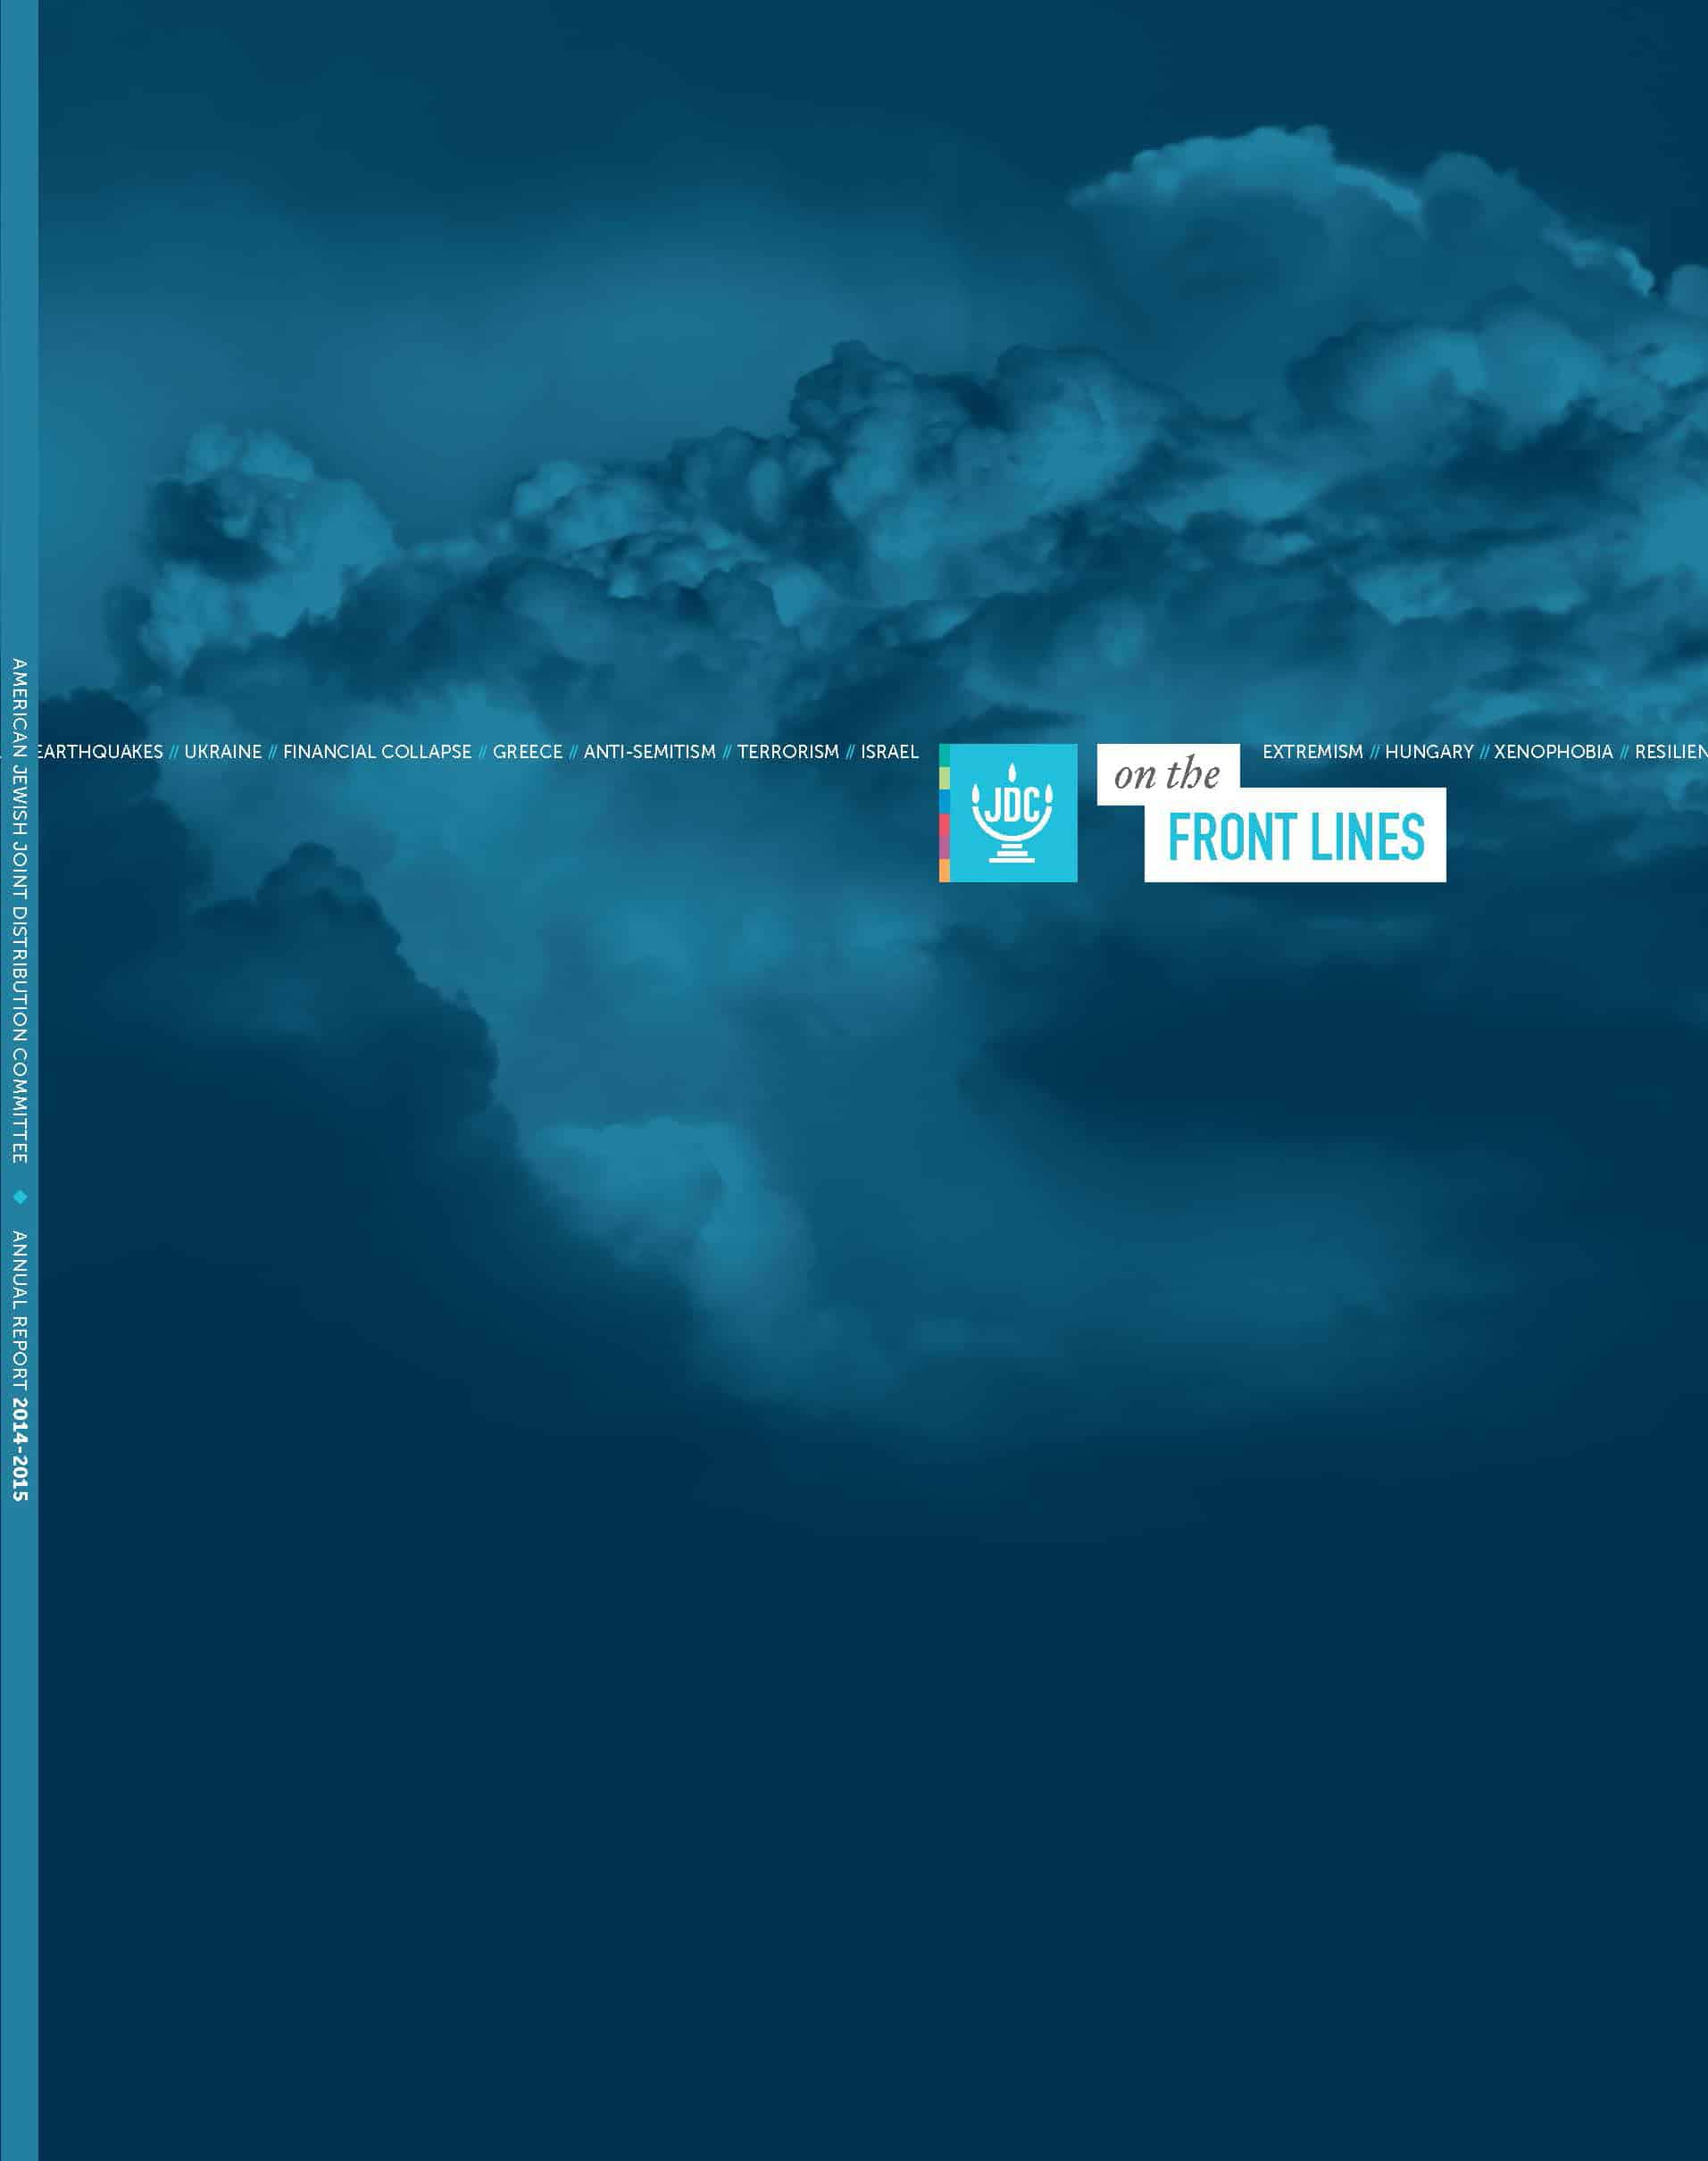 """""""JDC's Annual Report 2015 which depicts clouds and words like, """"global"""